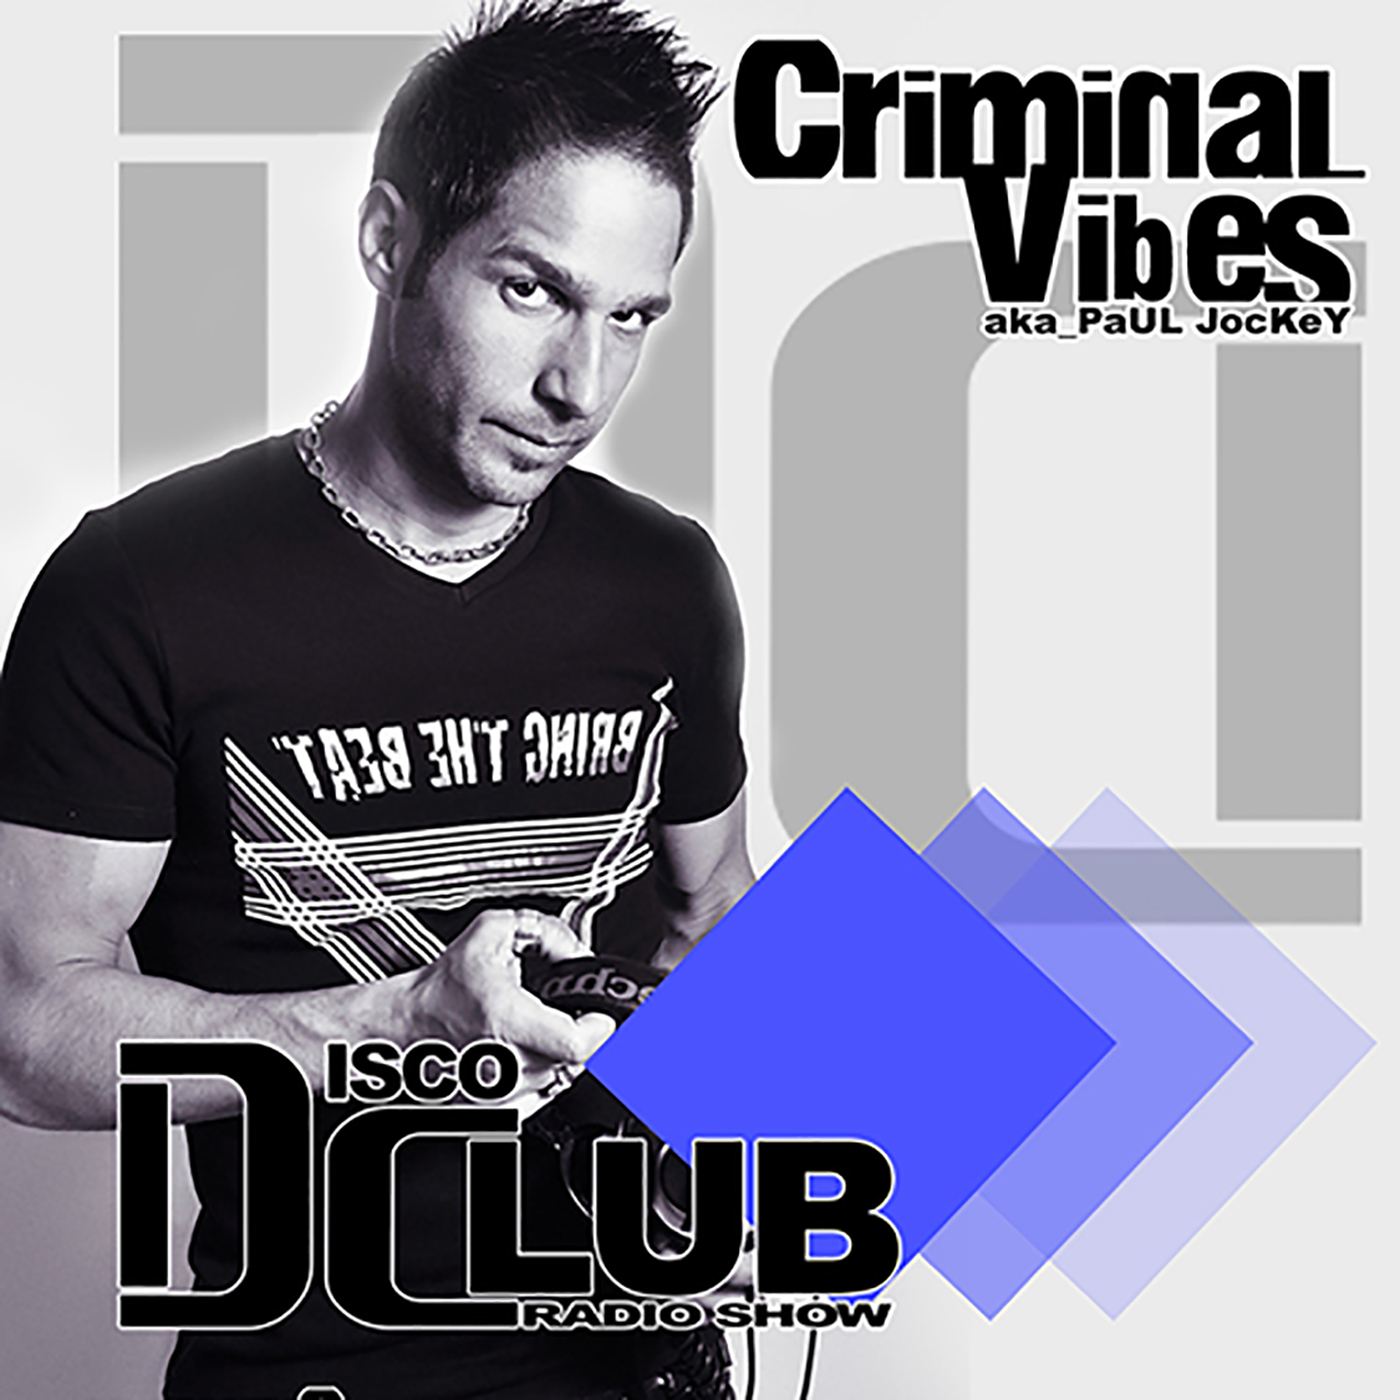 Disco Club - Criminal Vibes aka Paul Jockey Official Podcast